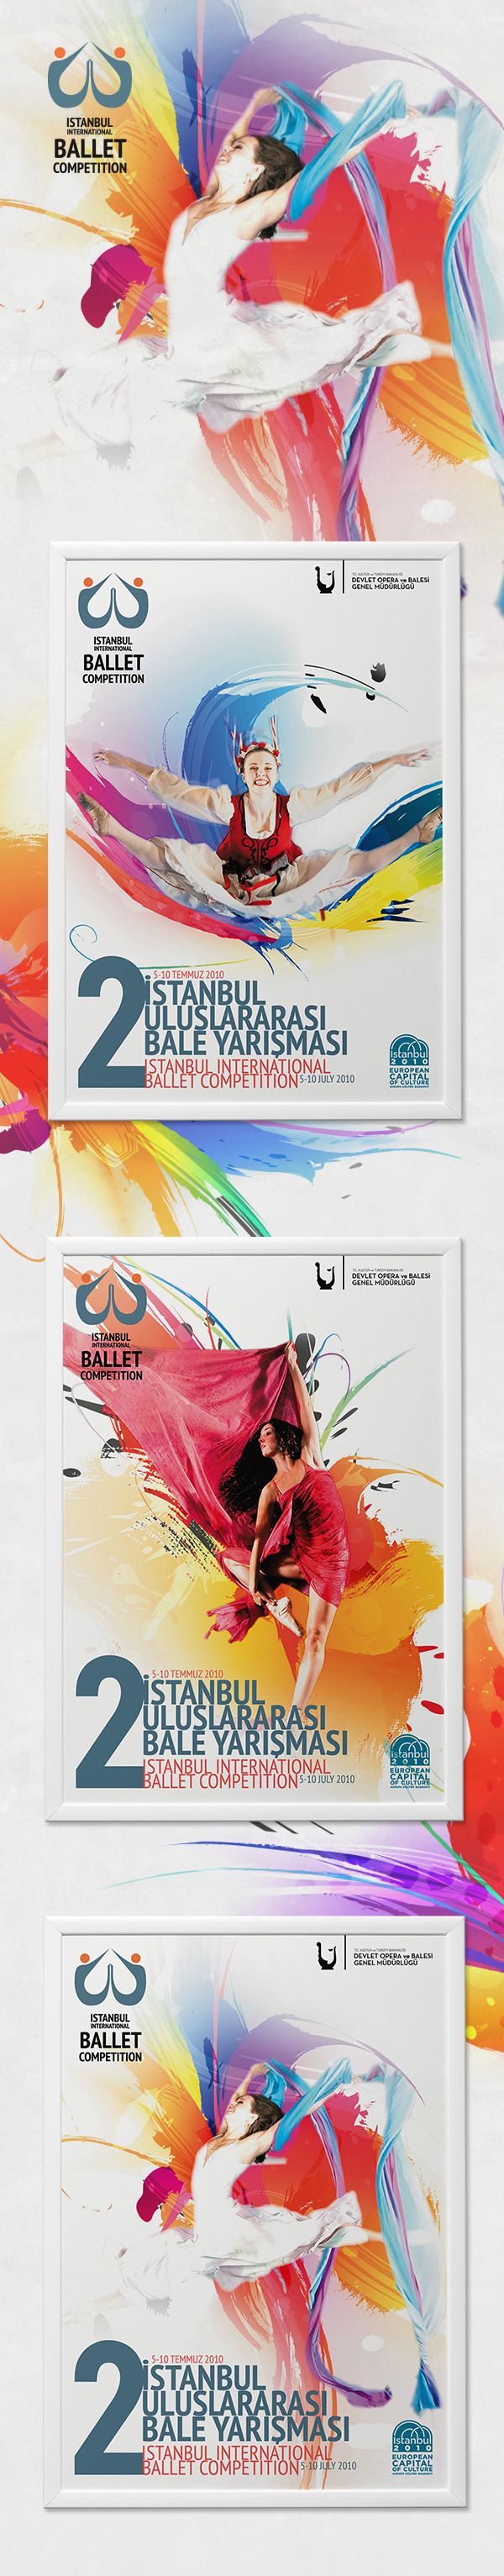 opera,ballet,istanbul,Competition,poster,International